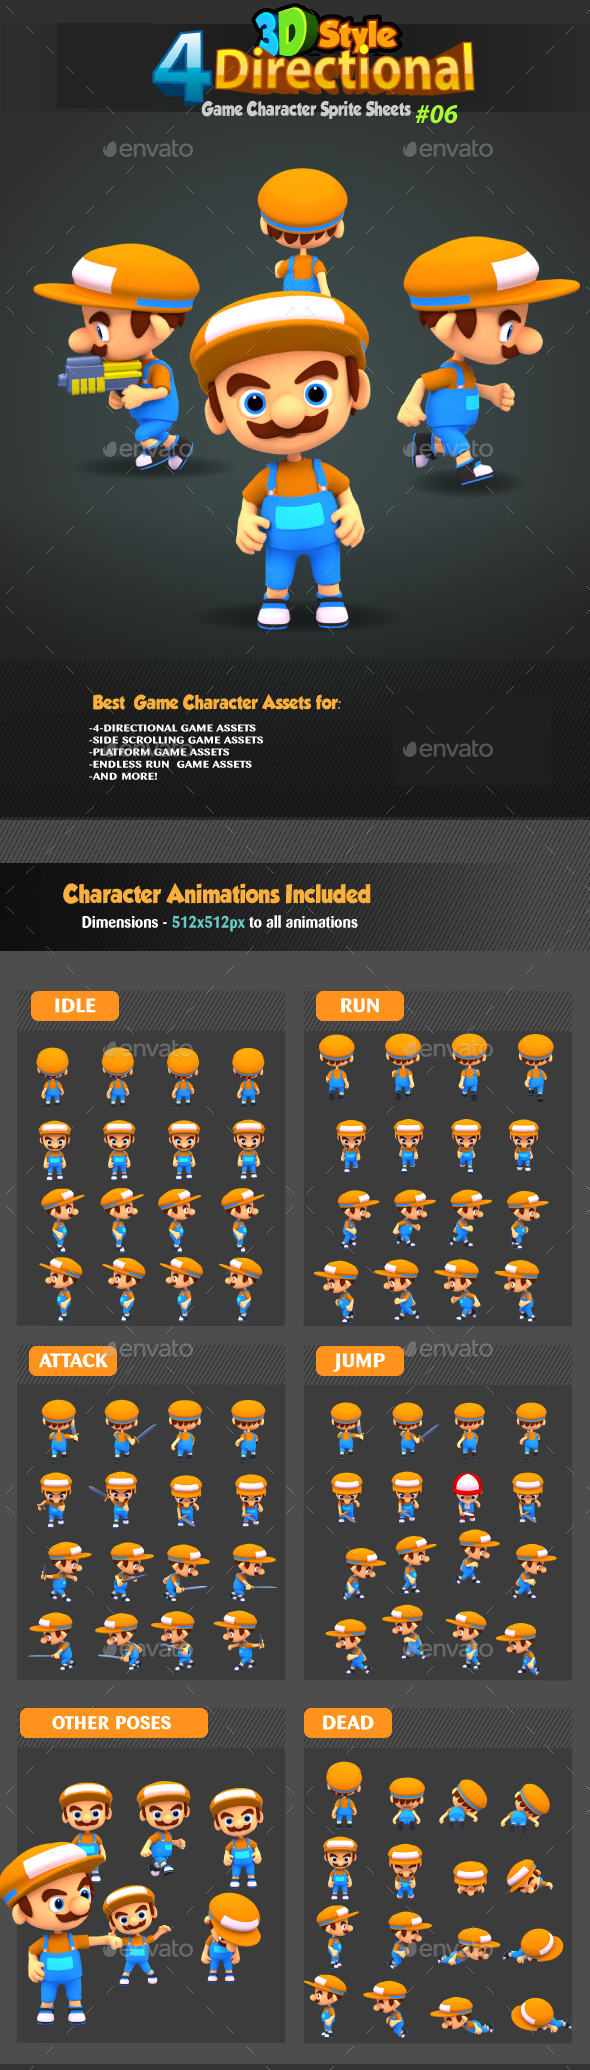 4 Directional 3D Style Game Character Sprites 06 - Sprites Game Assets